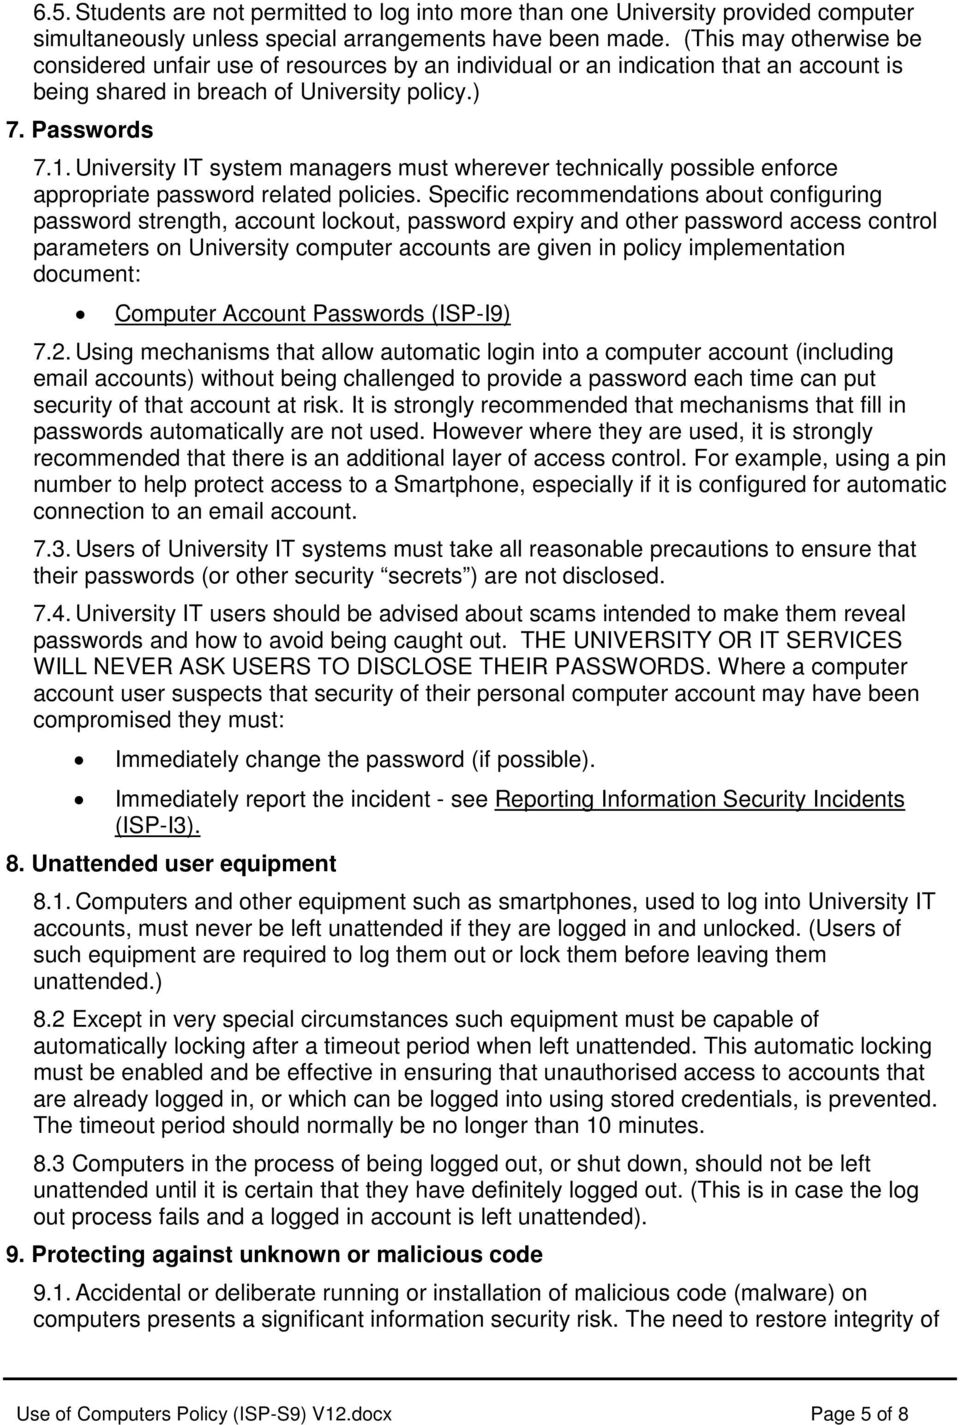 University IT system managers must wherever technically possible enforce appropriate password related policies.